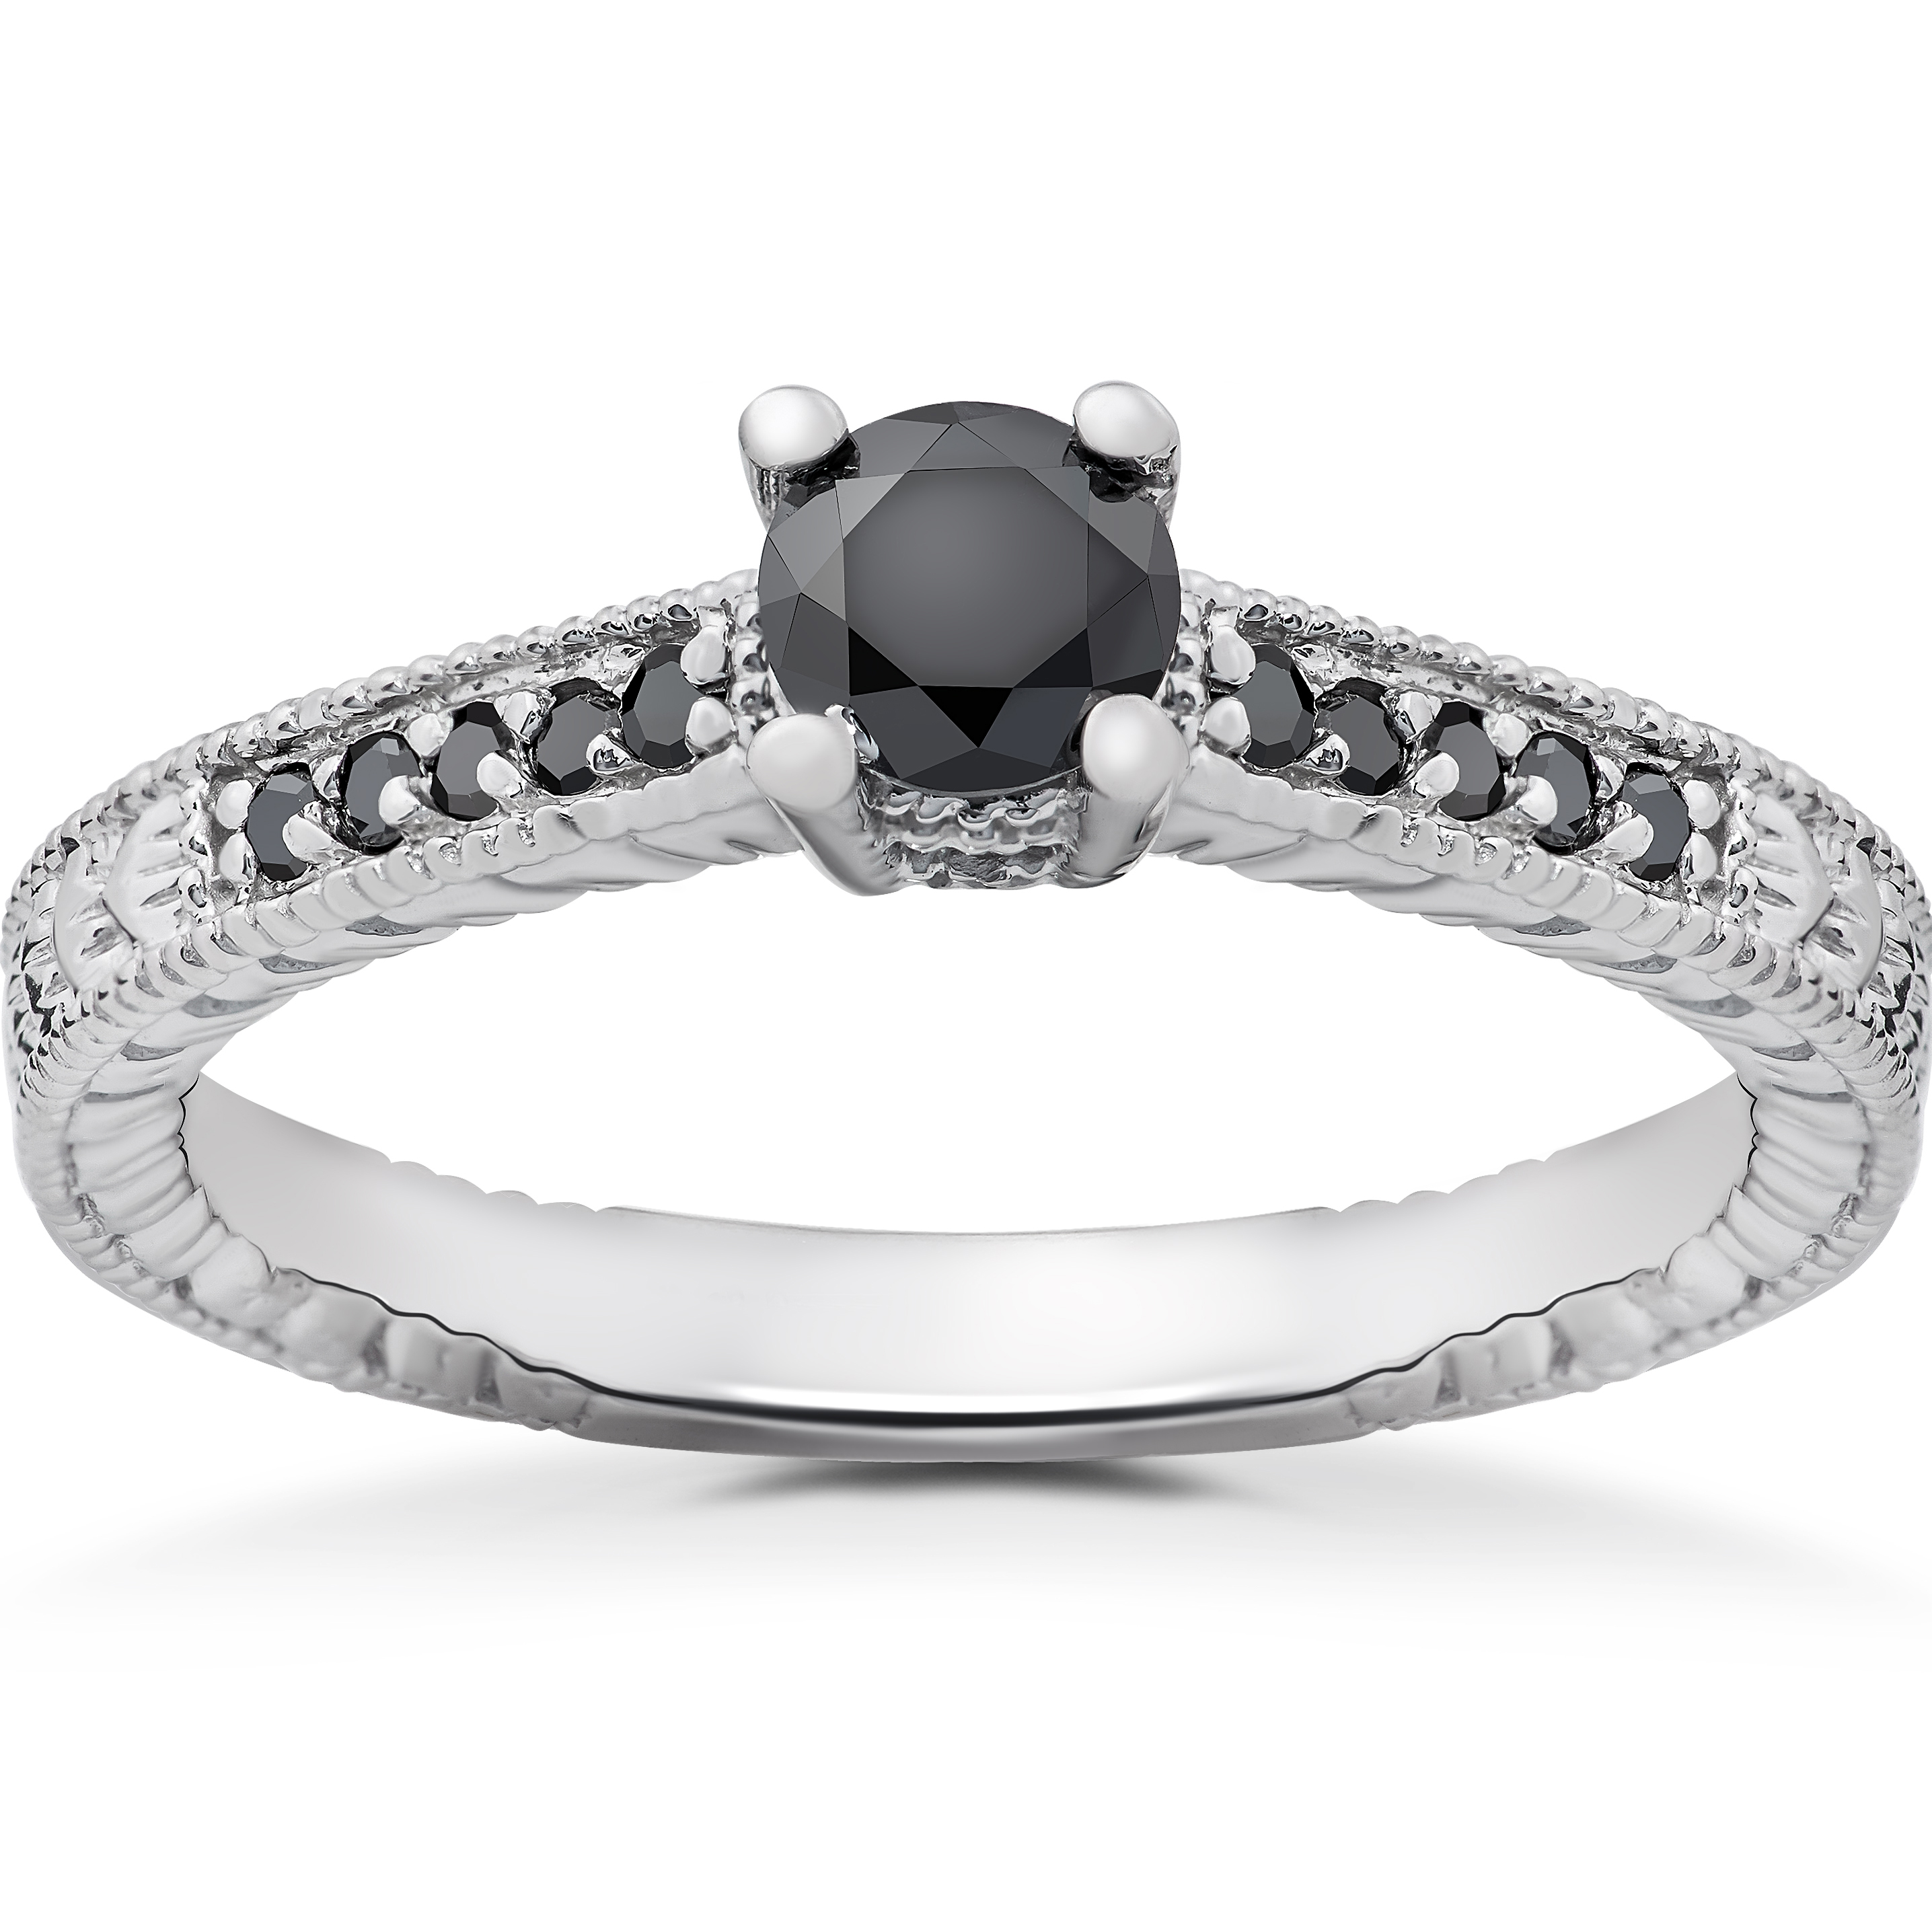 12 ct black diamond vintage engagement ring 14k white